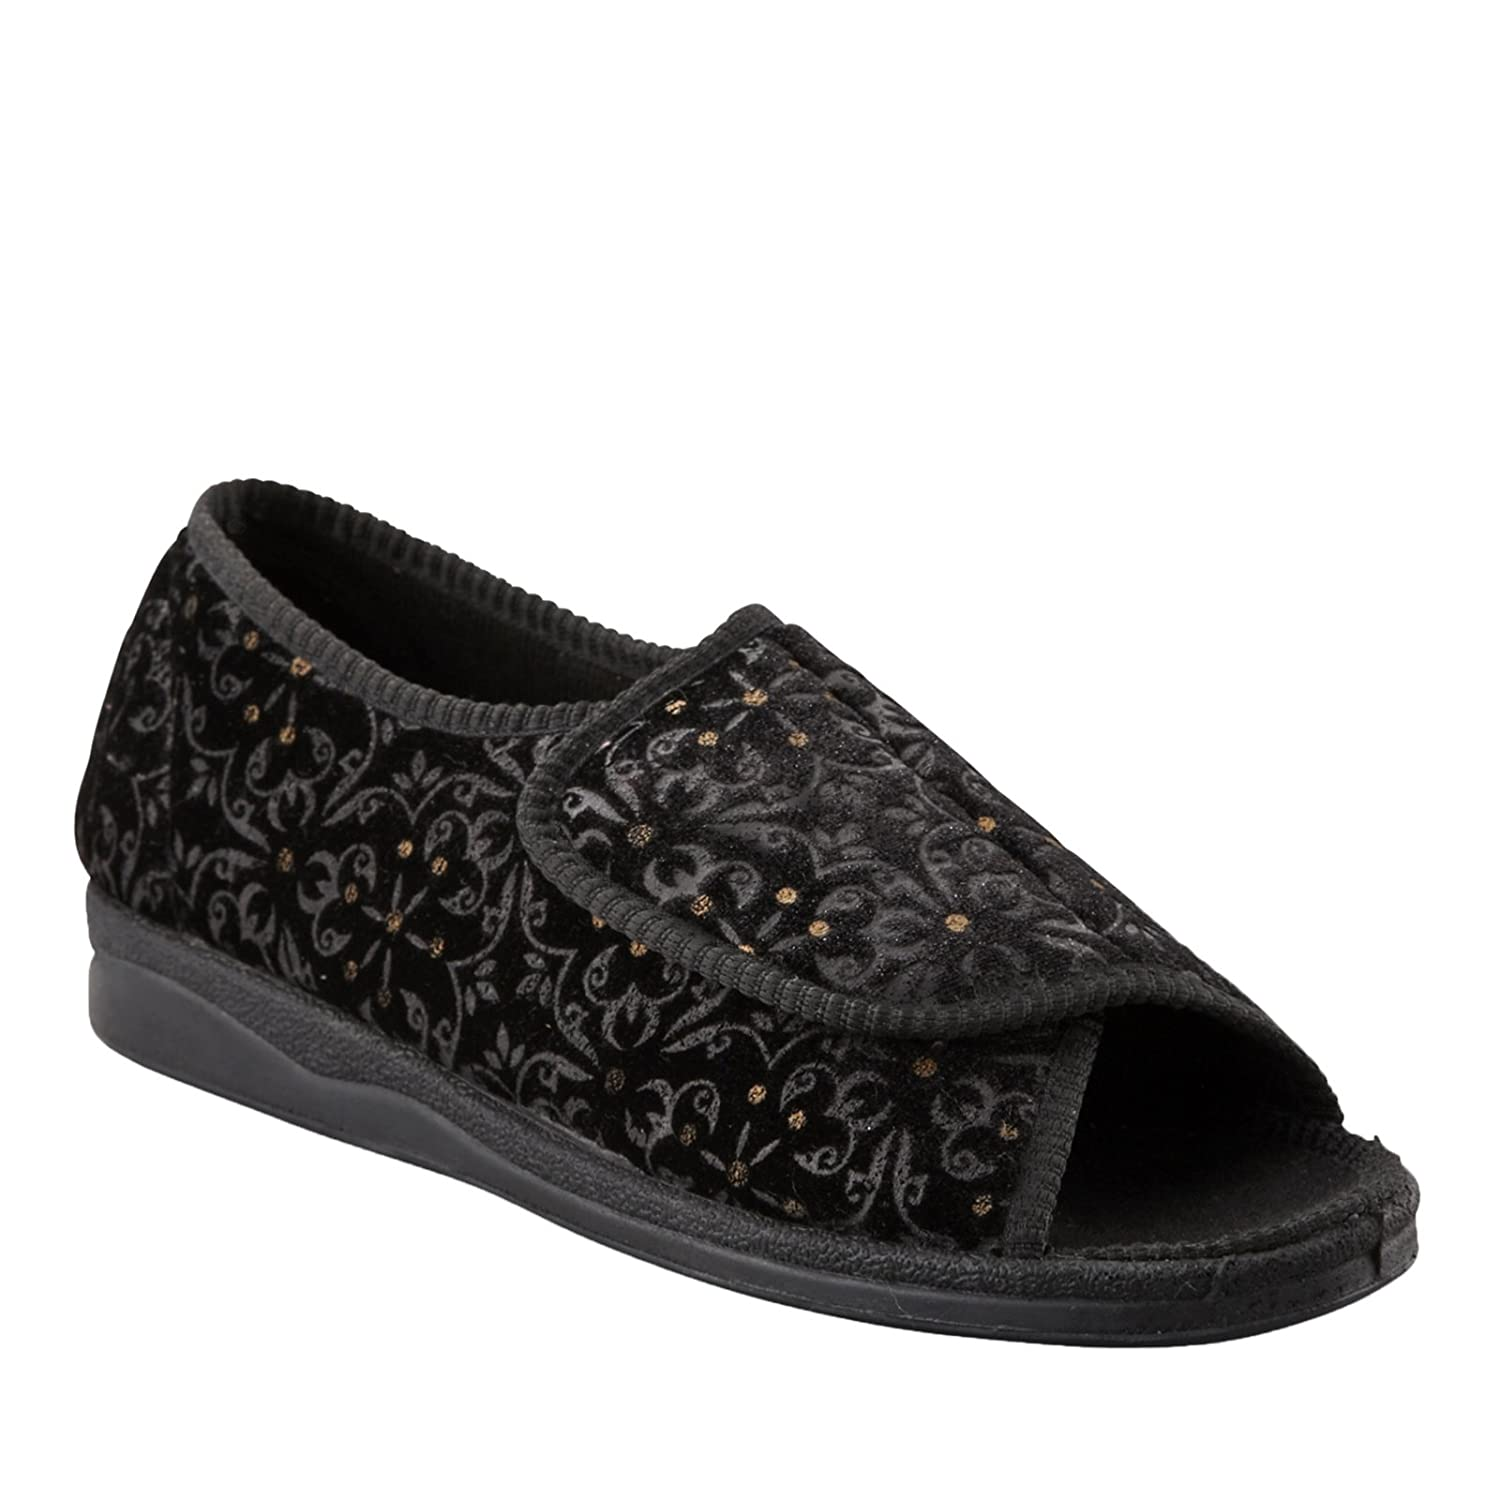 05bfdf181af3 Foamtreads Marla Black Tapestry Women s Slippers  Amazon.ca  Shoes    Handbags